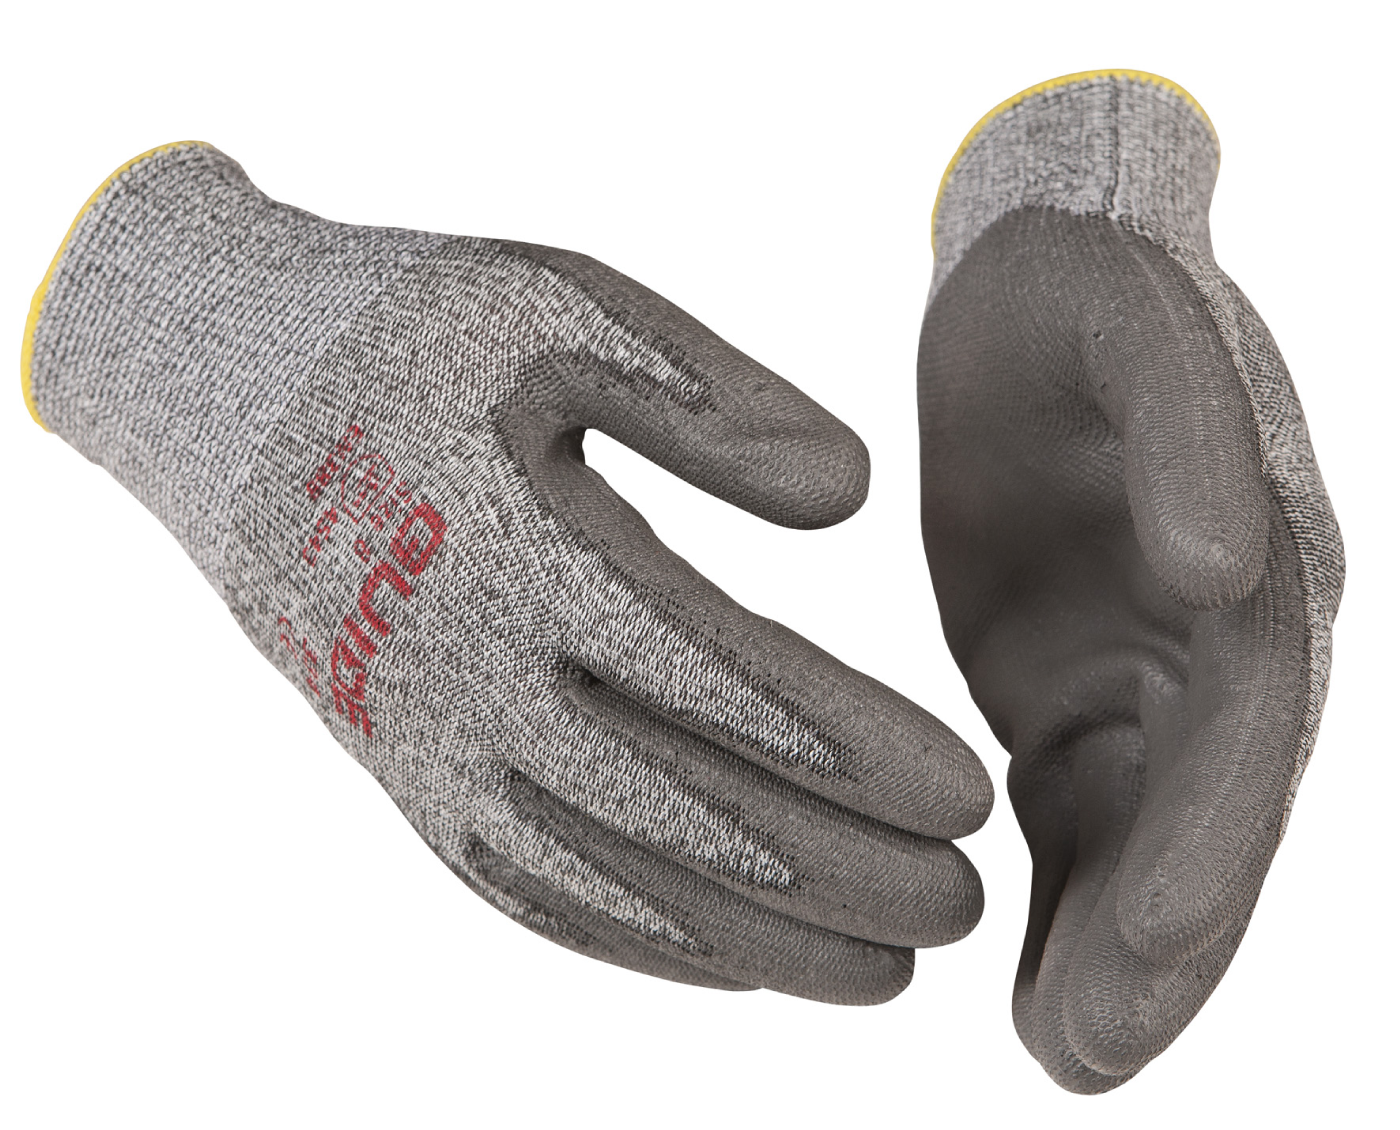 Cut Protection Glove GUIDE 334